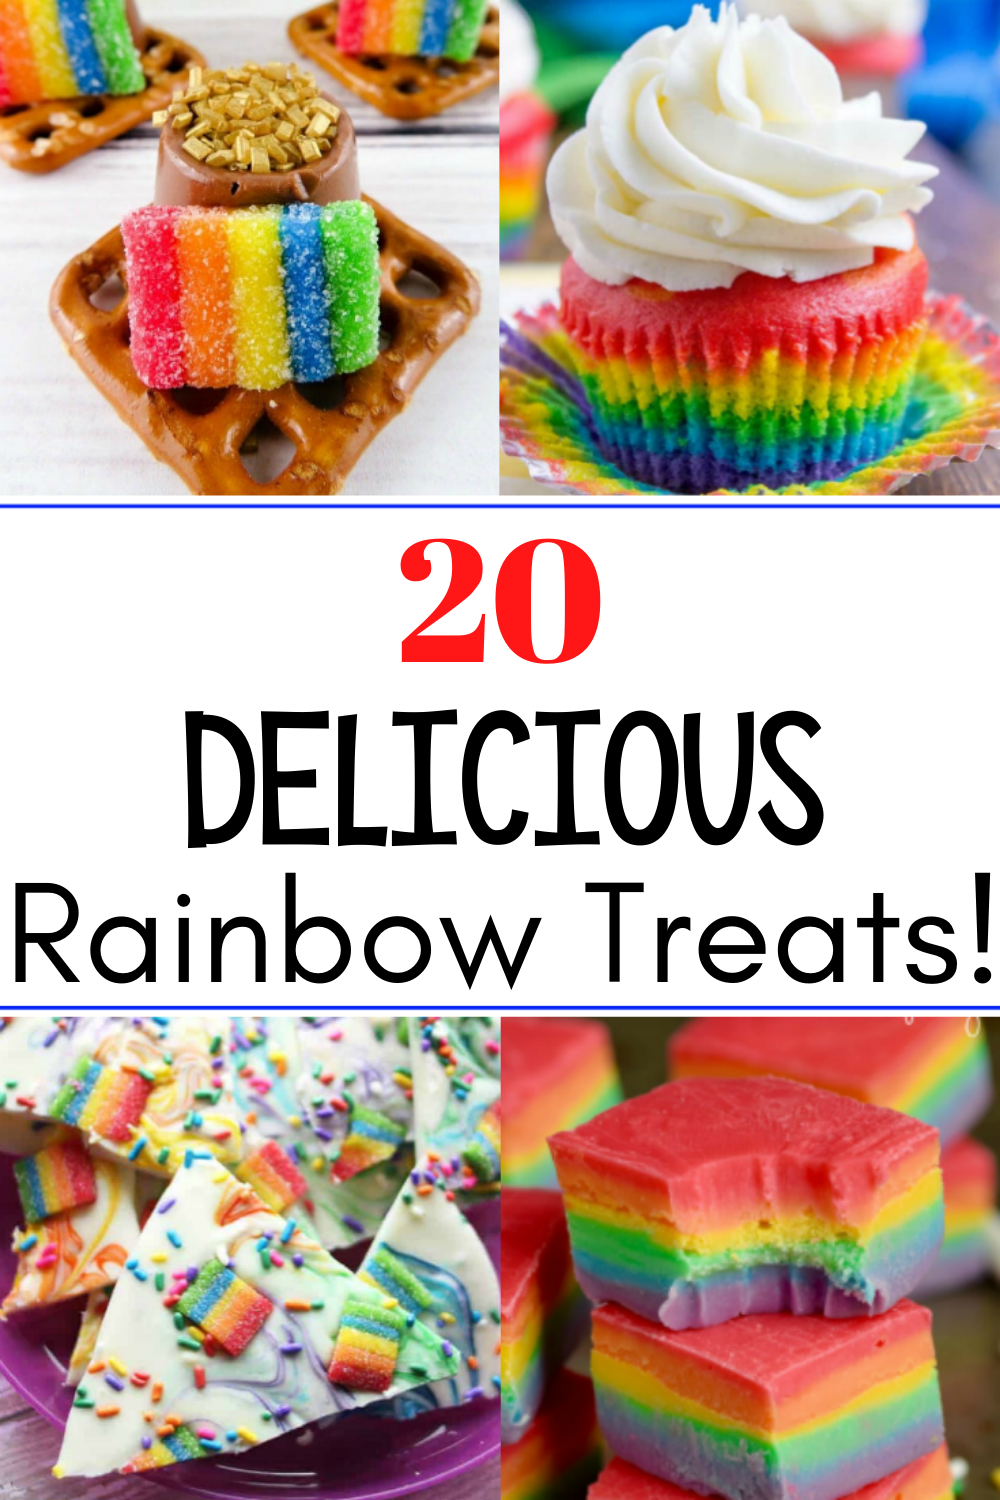 Rainbow Treats will brighten up the darkest and rainiest of days! Quick and easy recipes for the whole family!